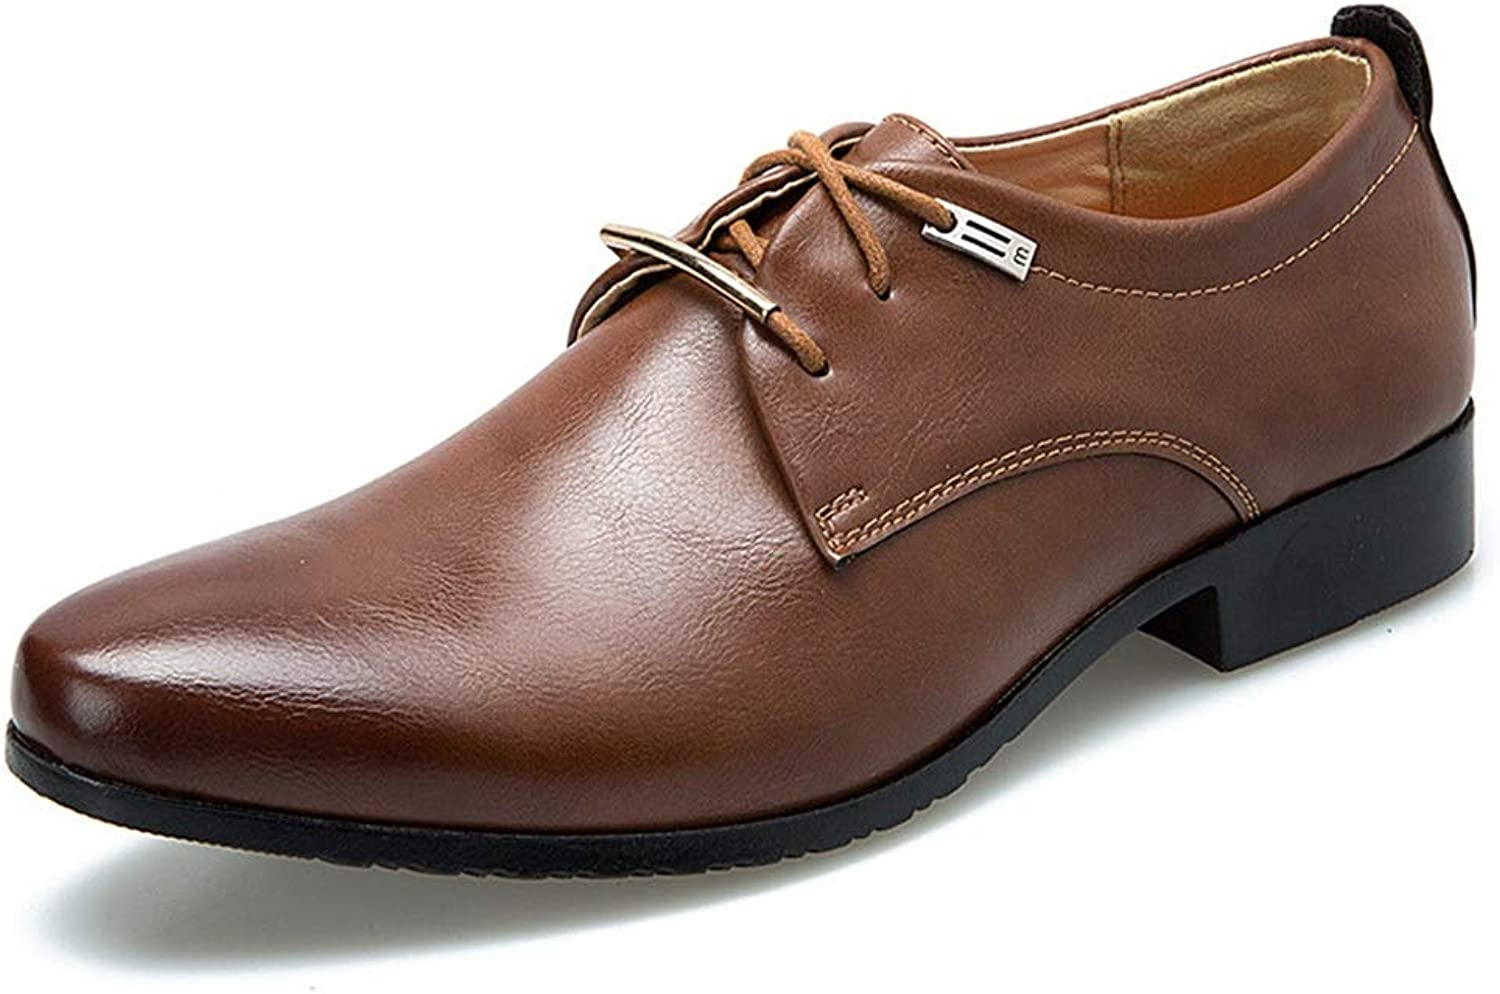 Business Men's England Leather shoes With Casual shoes Cricket shoes (color   Brown, Size   42)